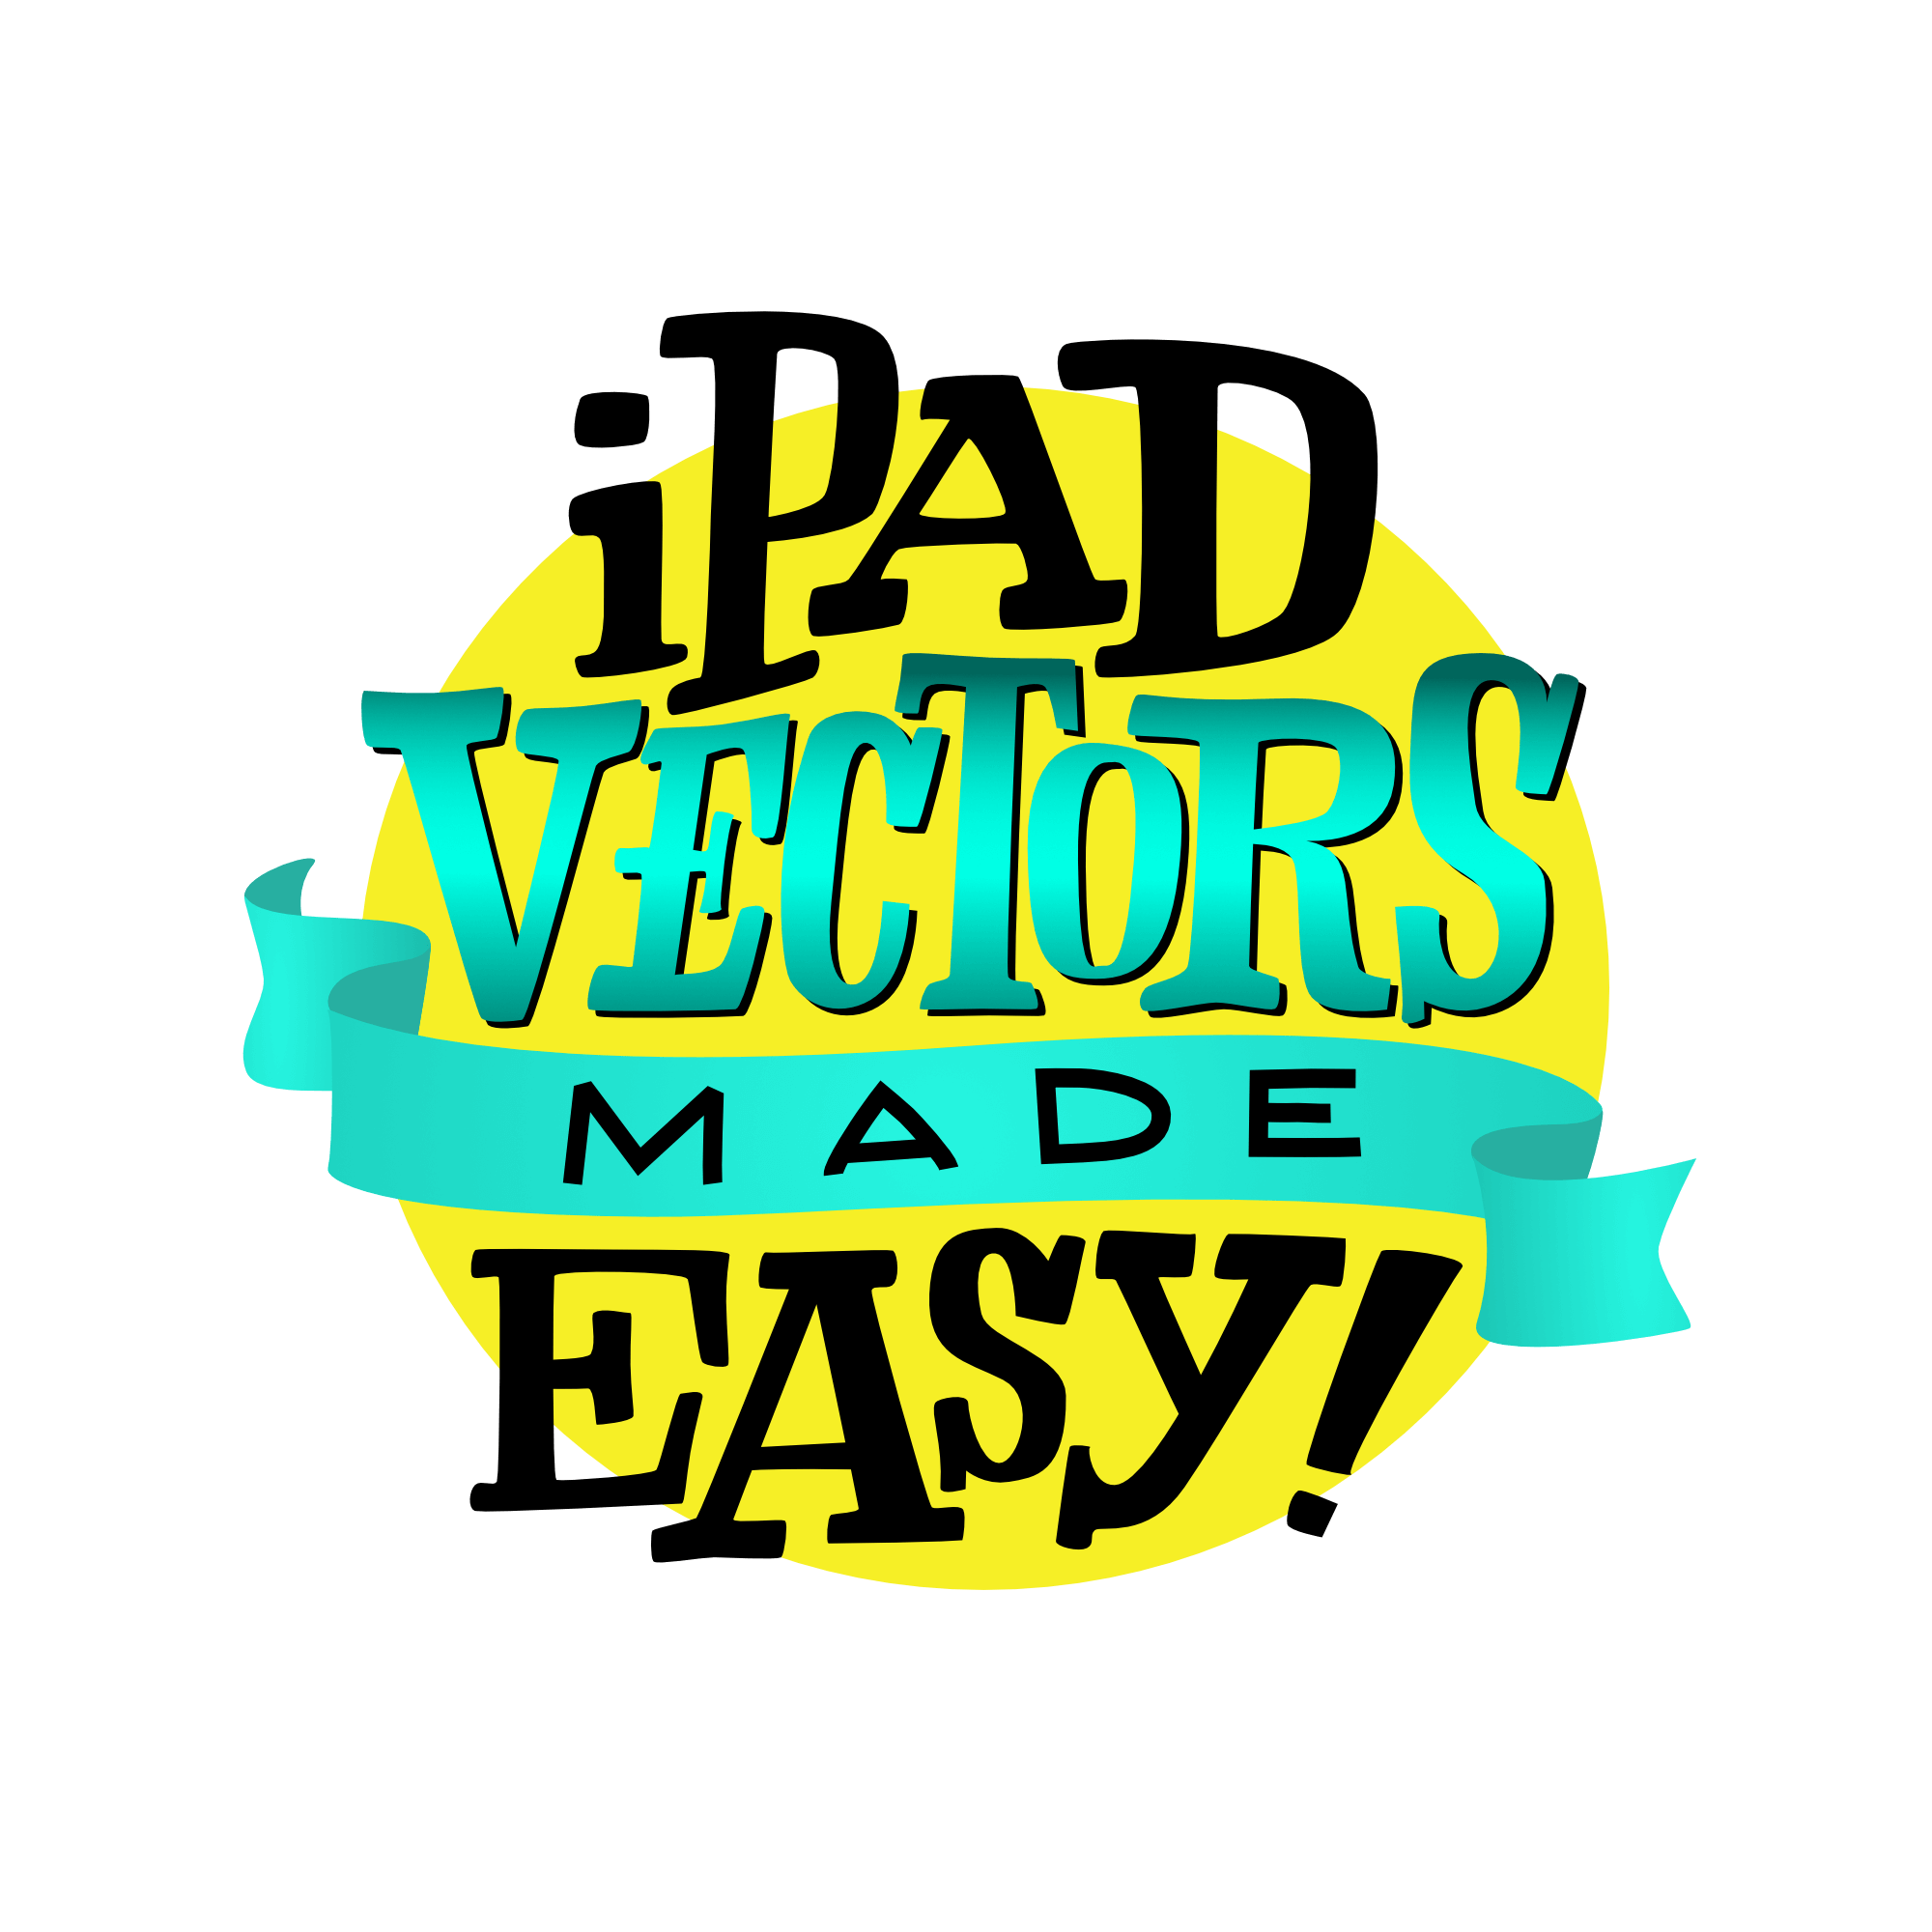 TINY iPad vectors made easy logo 2